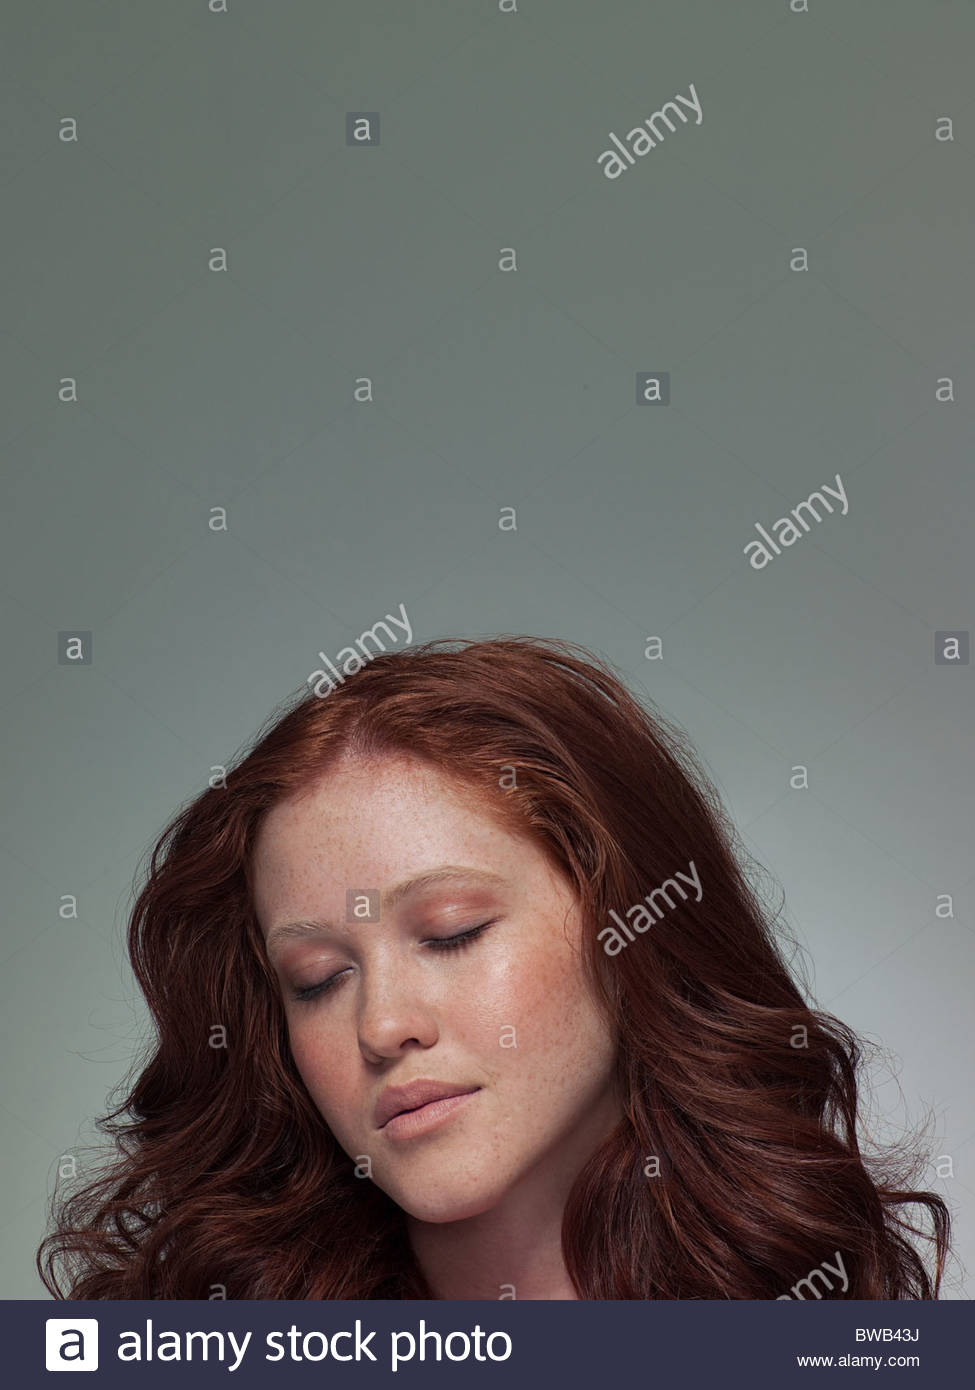 Head shot of young woman with eyes closed, portrait - Stock Image